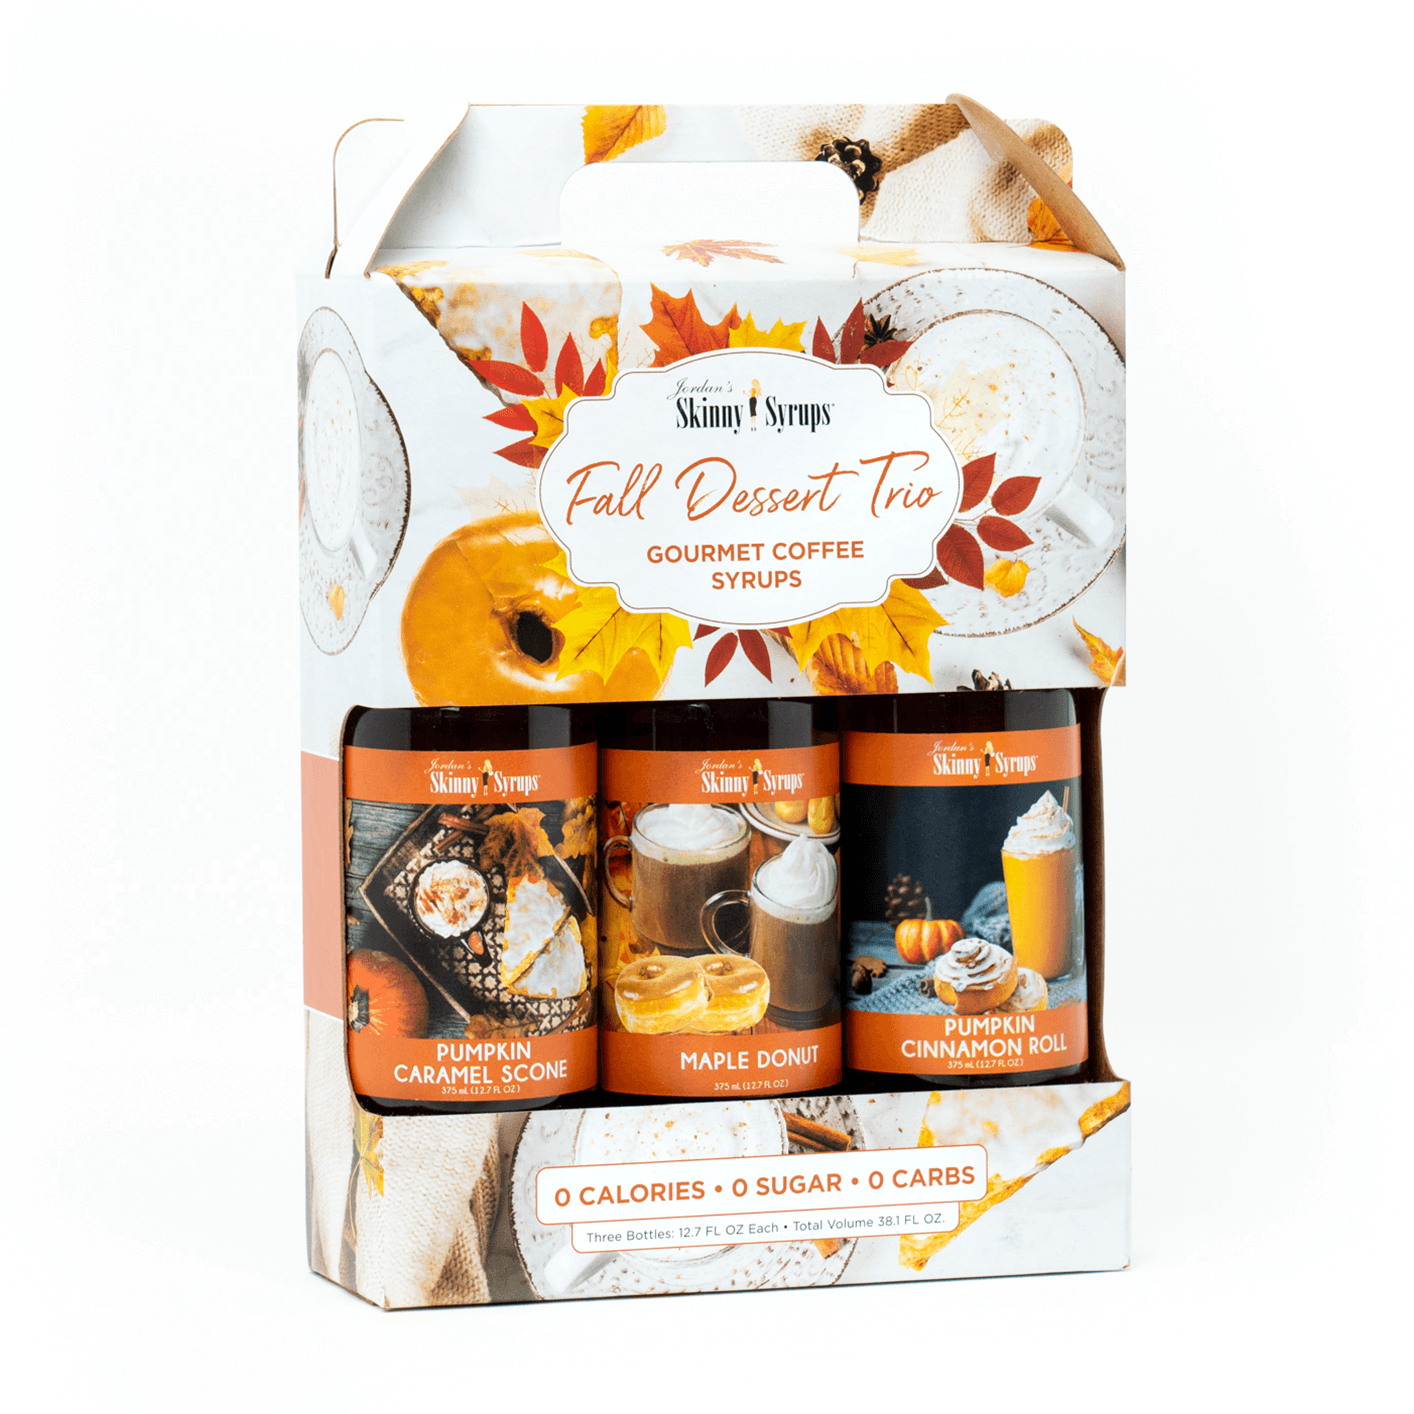 Fall Dessert Syrup Trio Gifts & Samplers Skinny Syrups